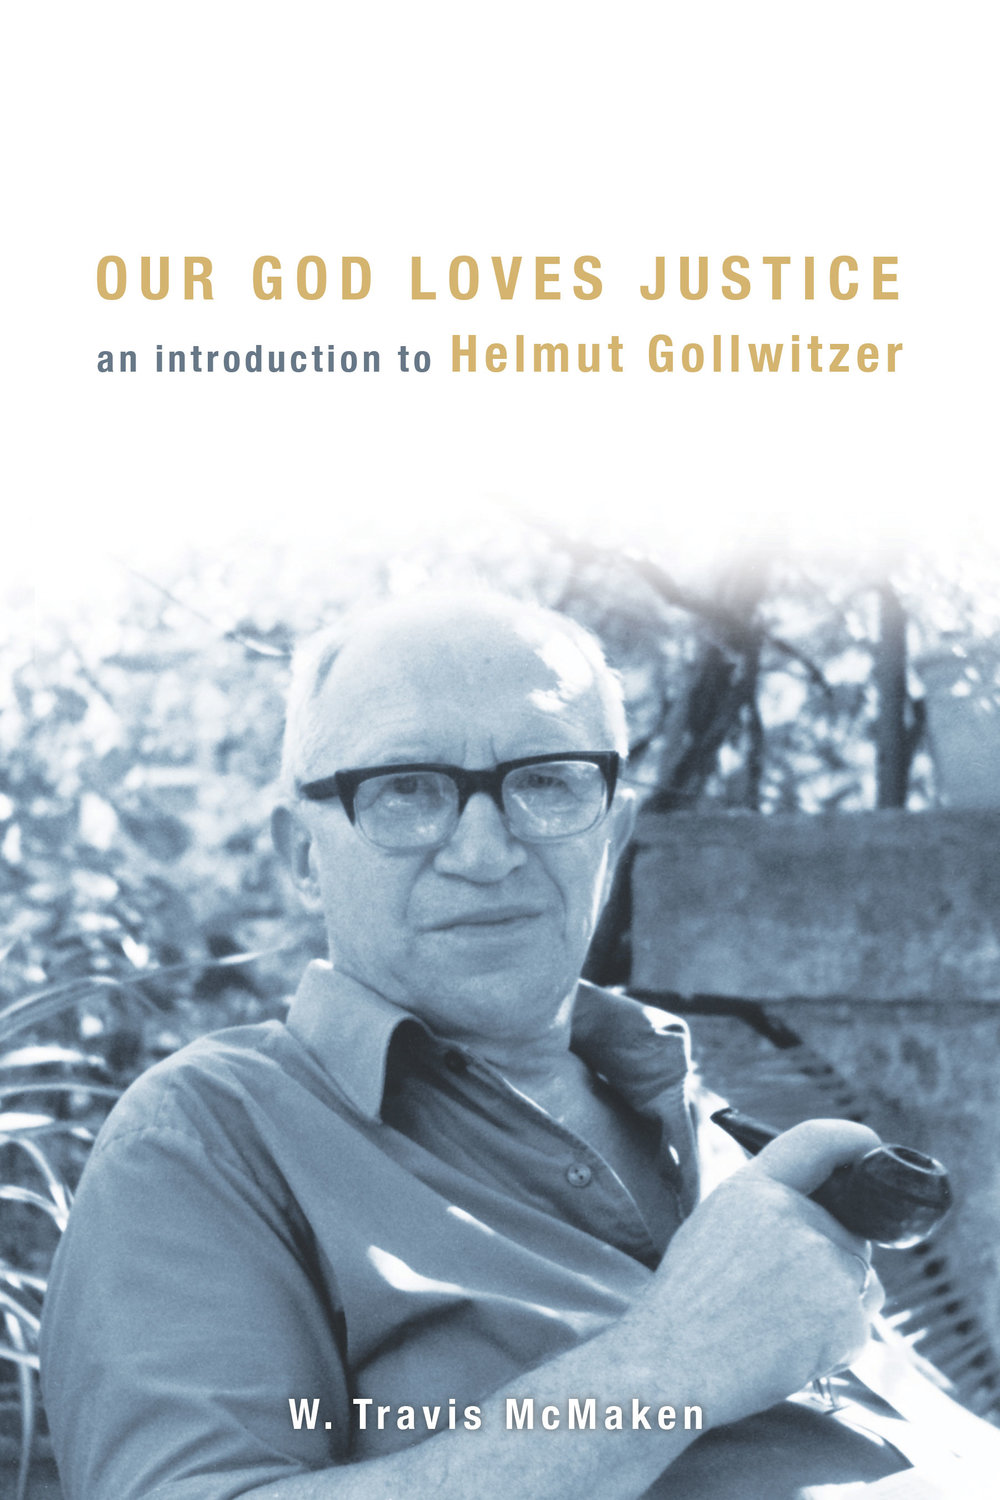 - This piece is part of a series of responses to the book Our God Loves Justice: An Introduction to Helmut Gollwitzer by W. Travis McMaken. We will be posting five responses to the book as part of this series. Our first contribution is from Rev. Lauren R. E. Larkin.Rev. Lauren R. E. Larkin is a priest in The Episcopal Church and a Teaching Chaplain at an Episcopal high school. She regularly contributes to theological blogs: Key Life and LaurenRELarkin.com. She is the host of the podcast Sancta Colloquia. She tweets:@laurenrelarkin.